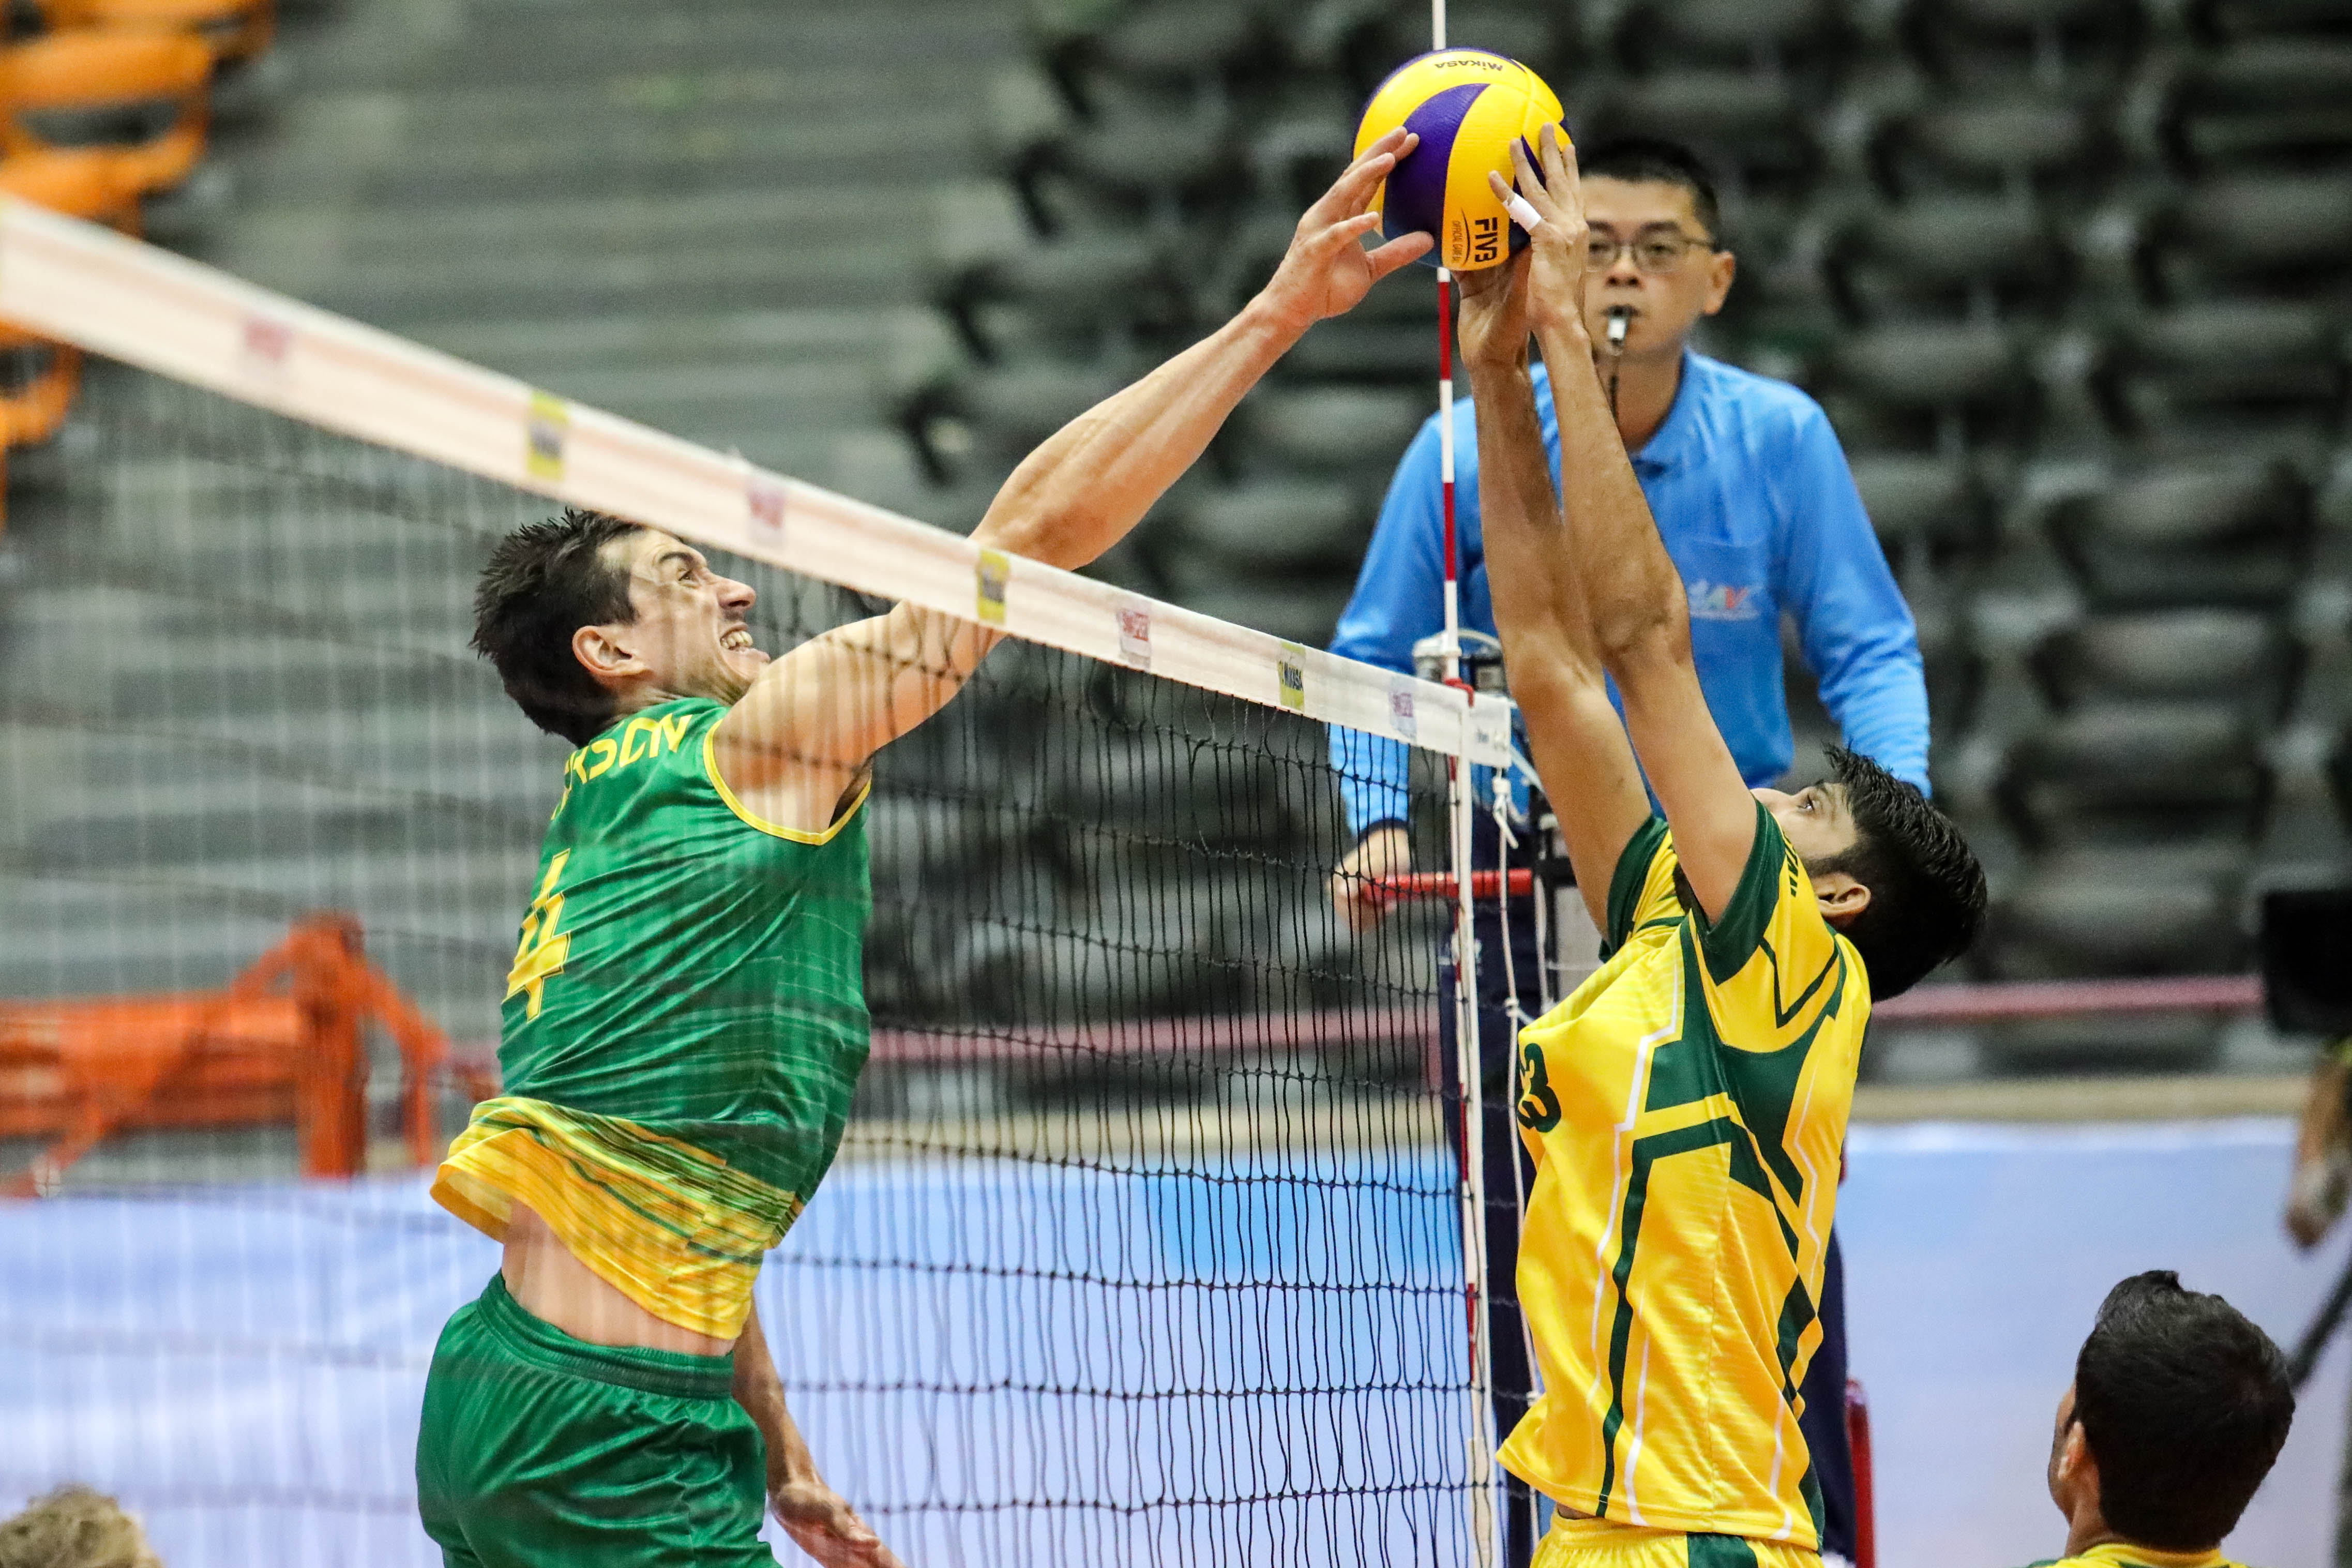 VOLLEYROOS THROUGH TO SEMI-FINALS AFTER EPIC COMEBACK AGAINST PAKISTAN